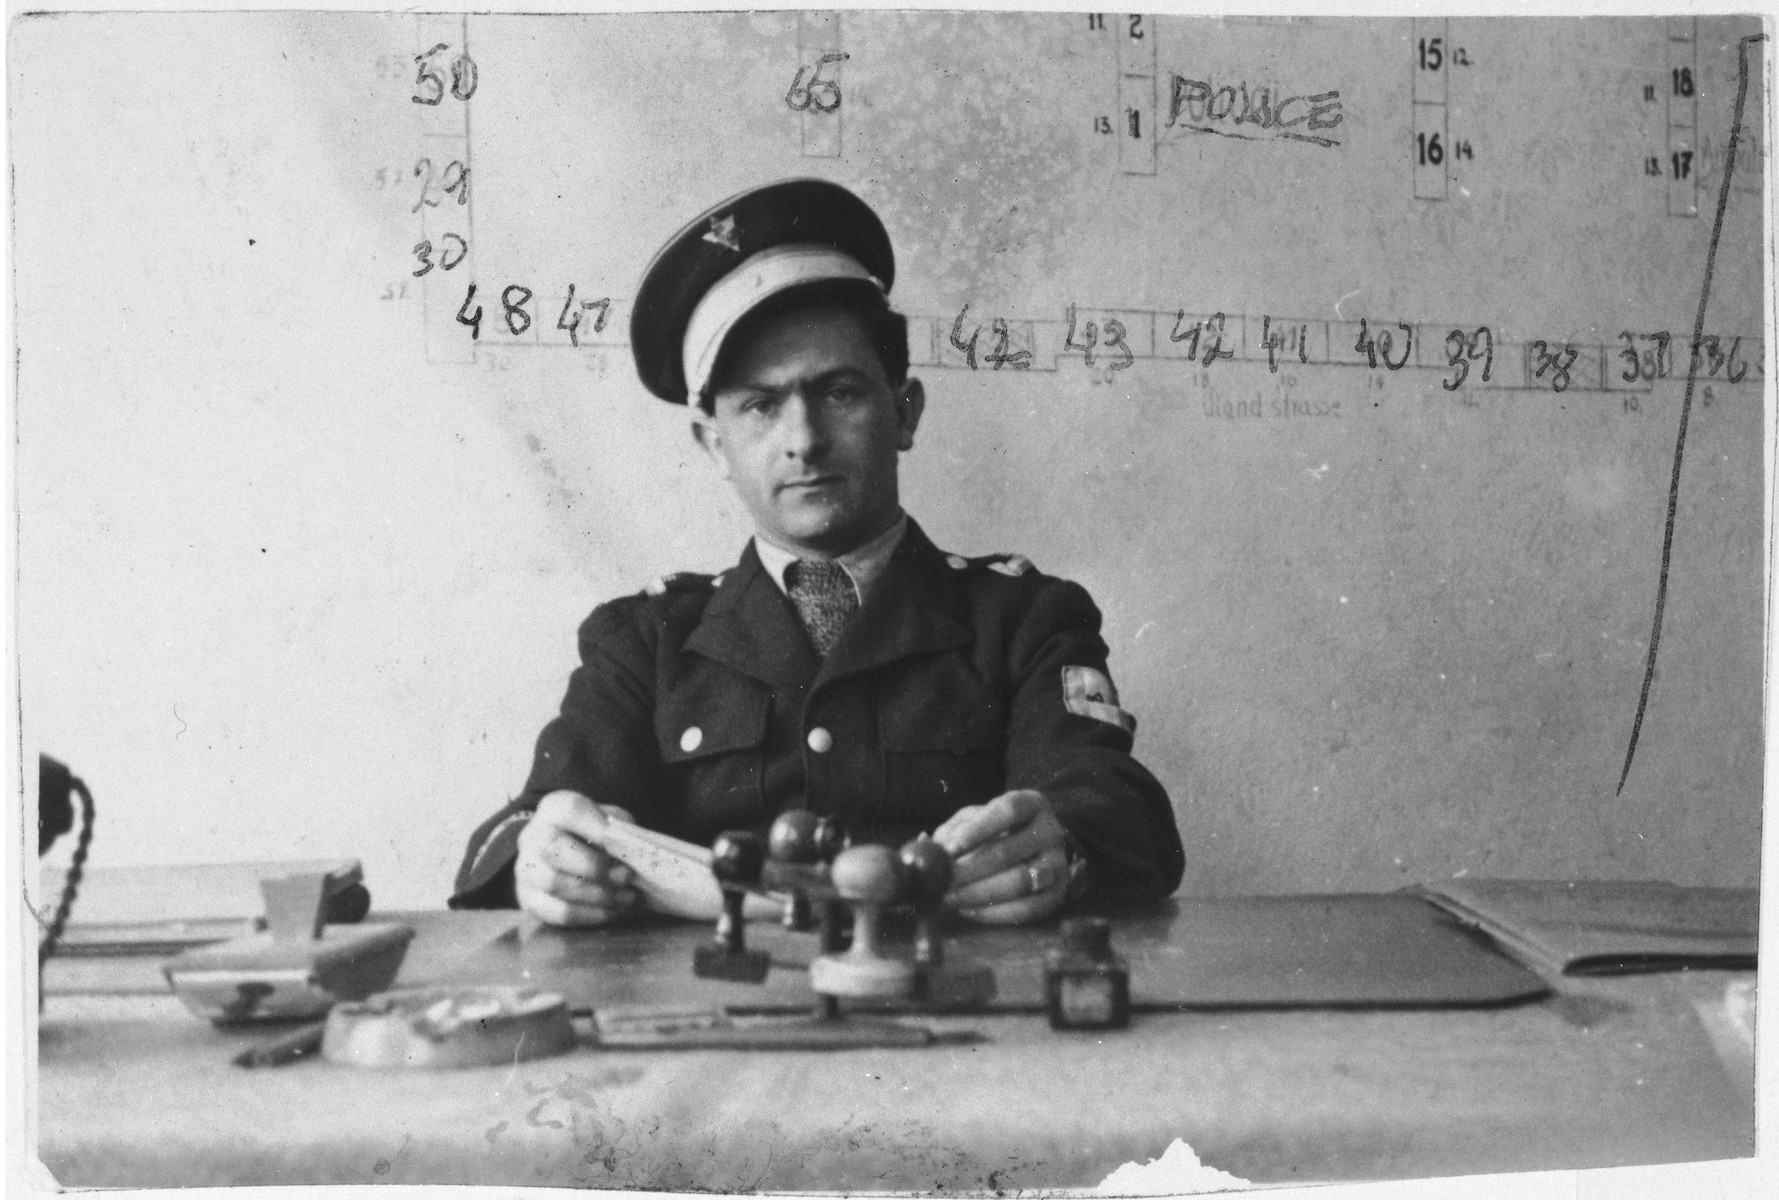 Police chief Willie Sterner sits at his desk in the Bindermichl displaced persons camp.